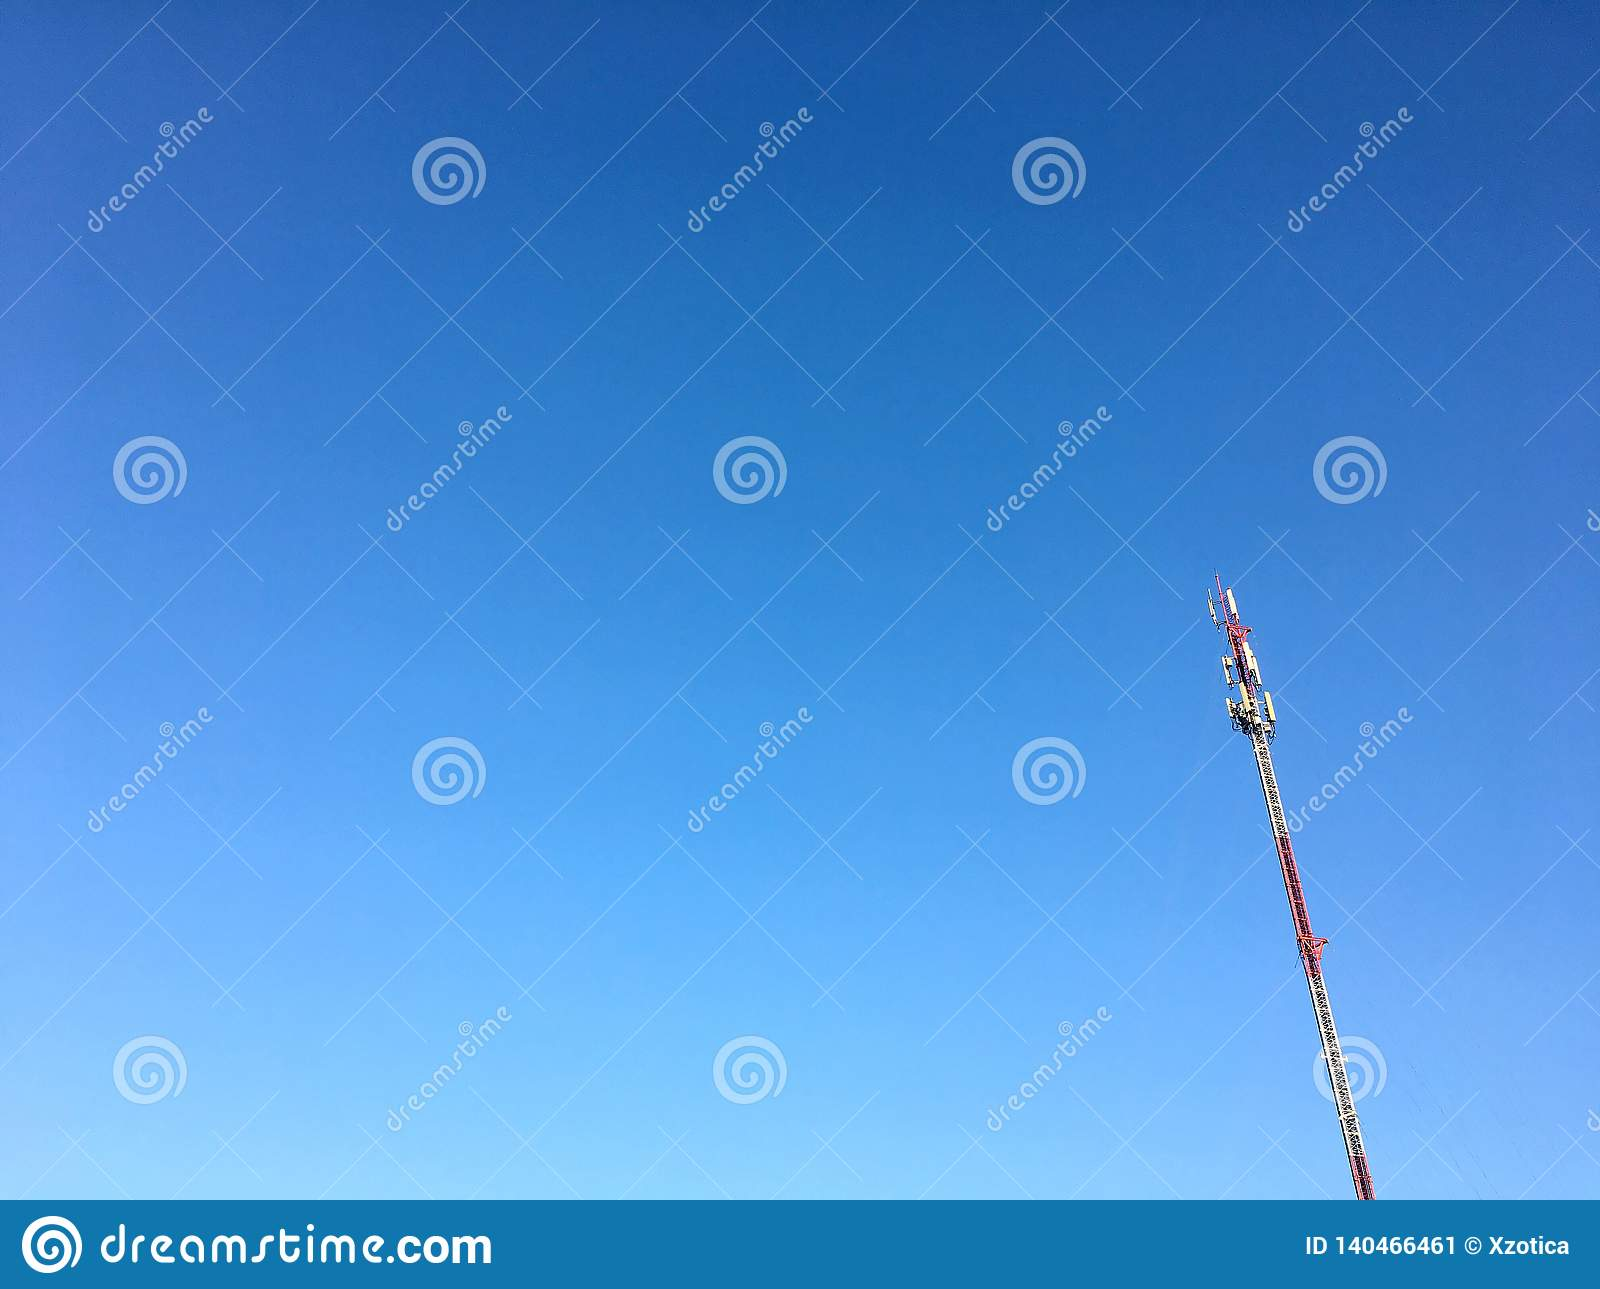 Telecommunication pole with cleared blue sky background